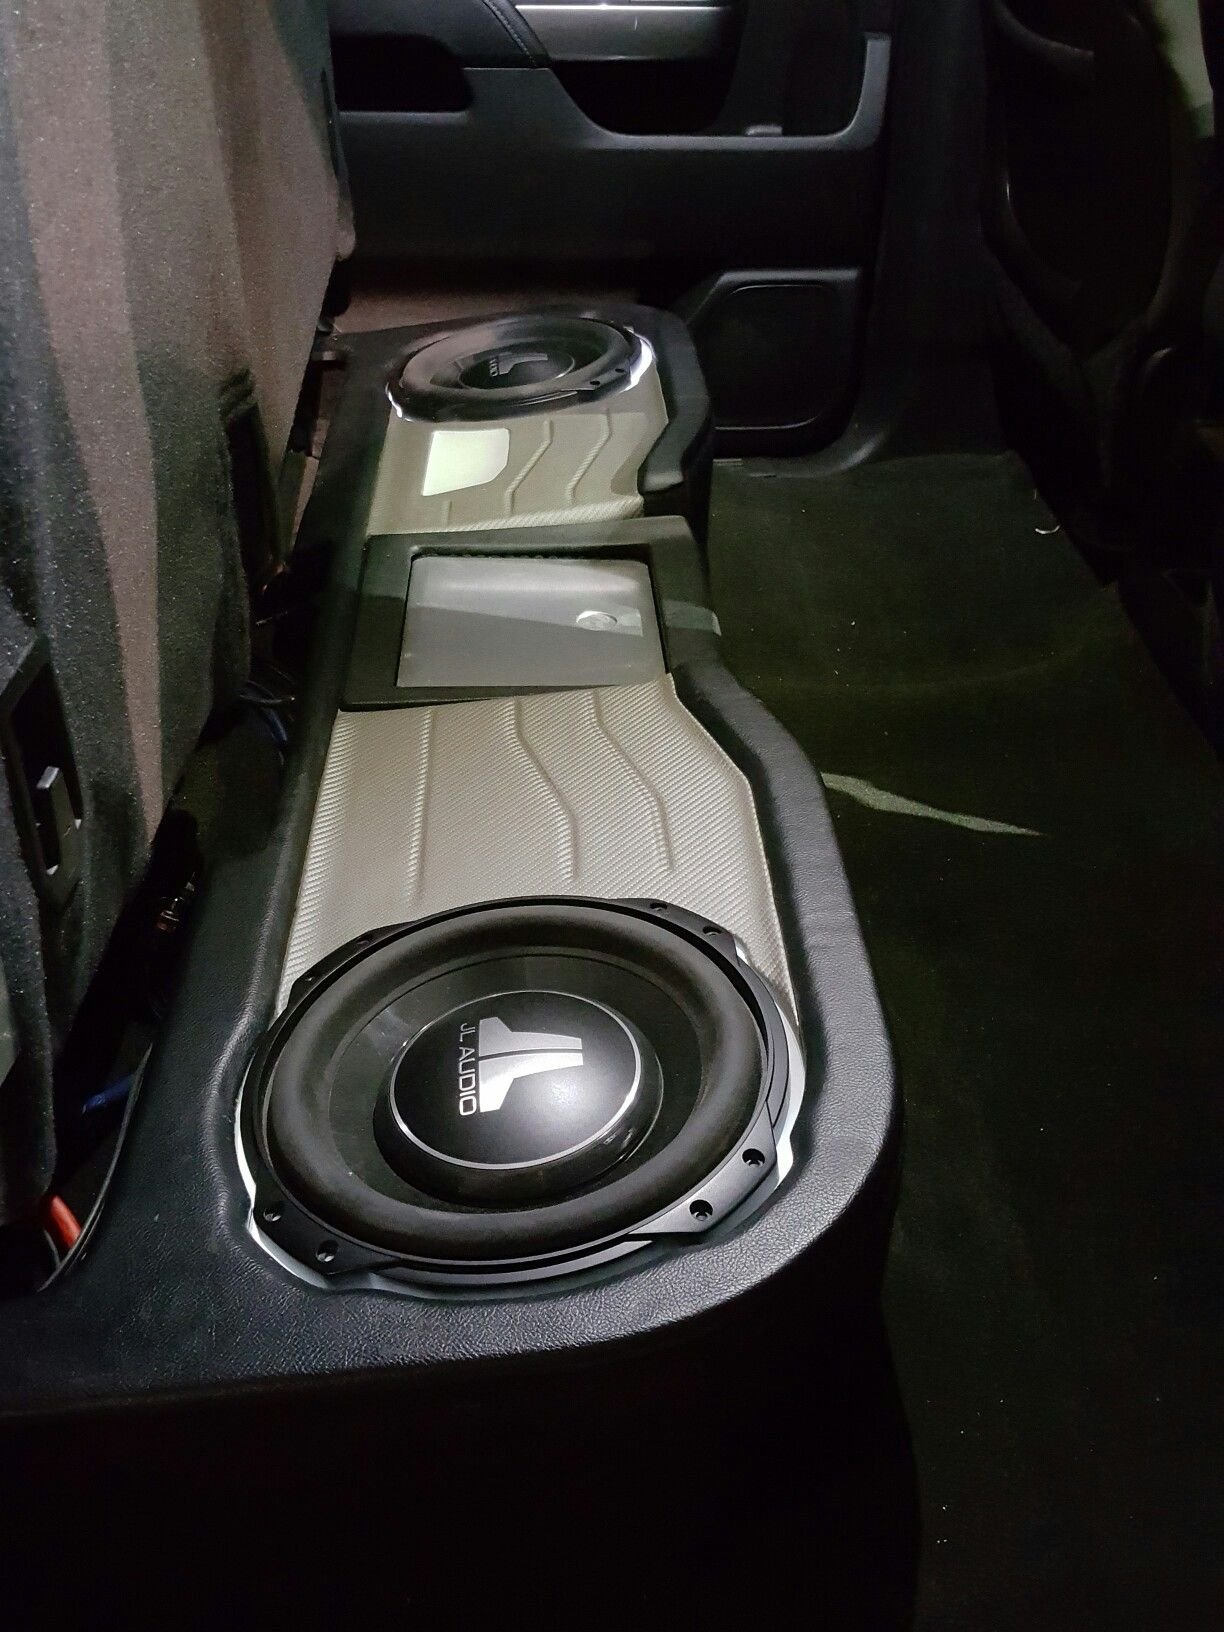 Chevy Underseat Enclosure For 2 Jl Audio Shallow Subs With Led Trim Rings Around The Subs Soundtheorycustom Truck Audio Car Stereo Systems Truck Audio System